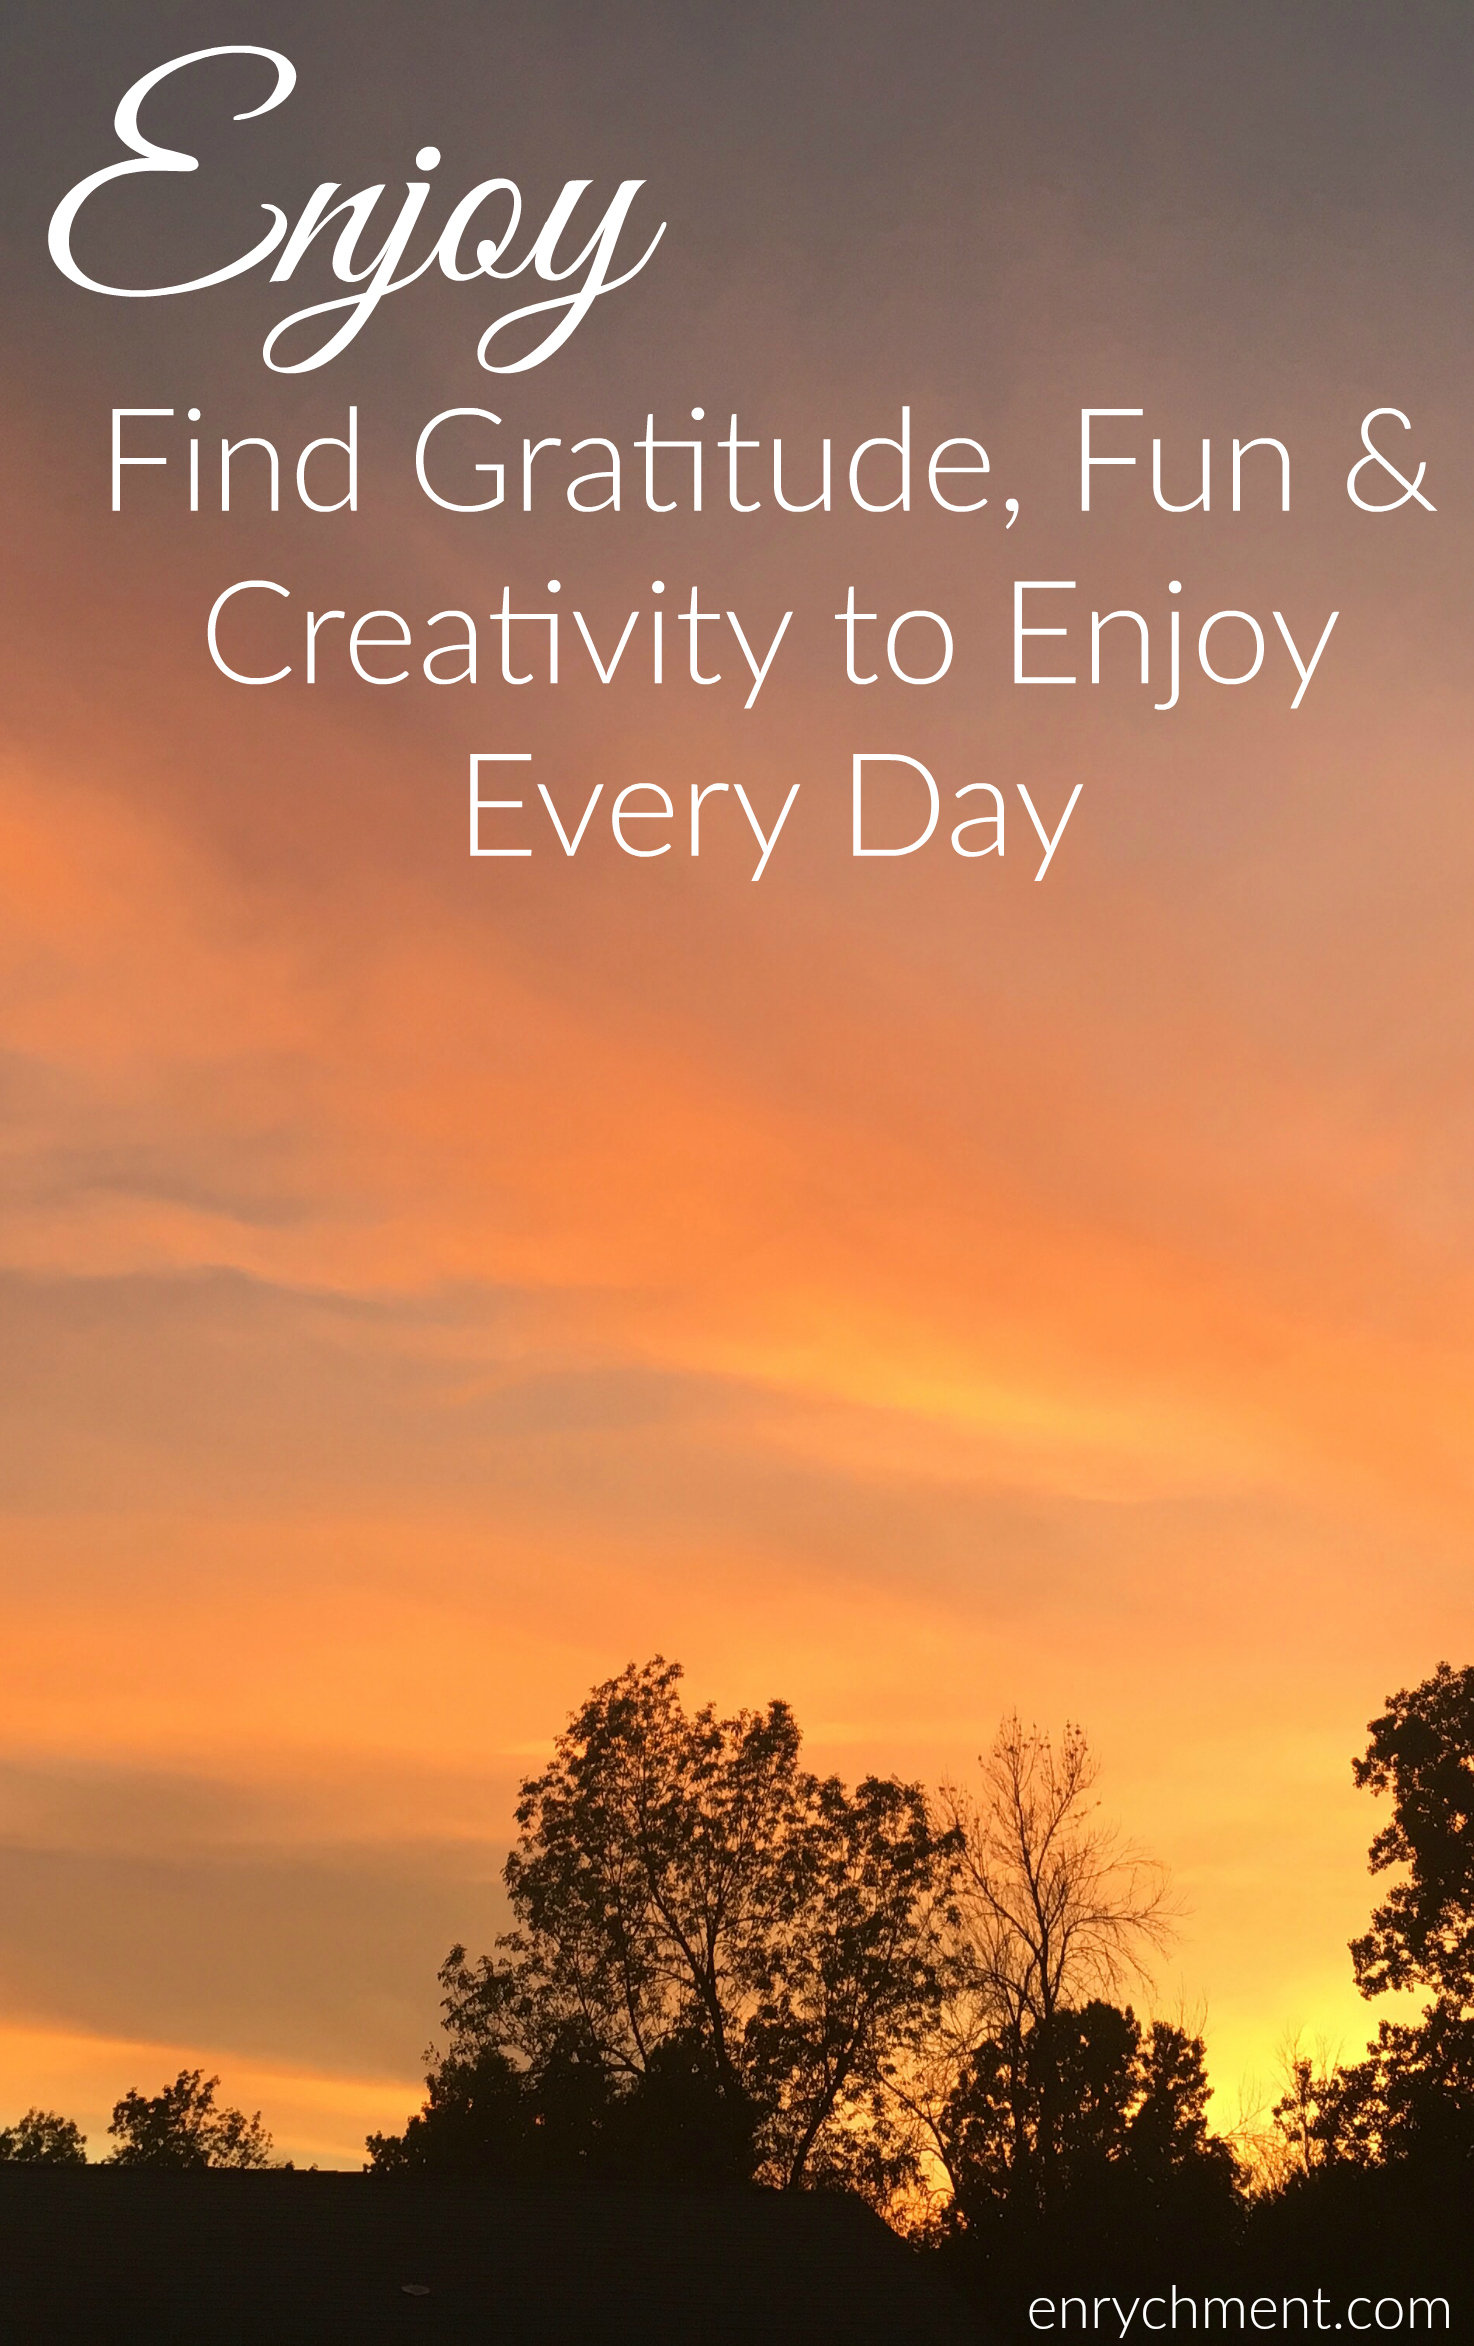 Finding Gratitude, Fun & Creativity to Enjoy Every Day